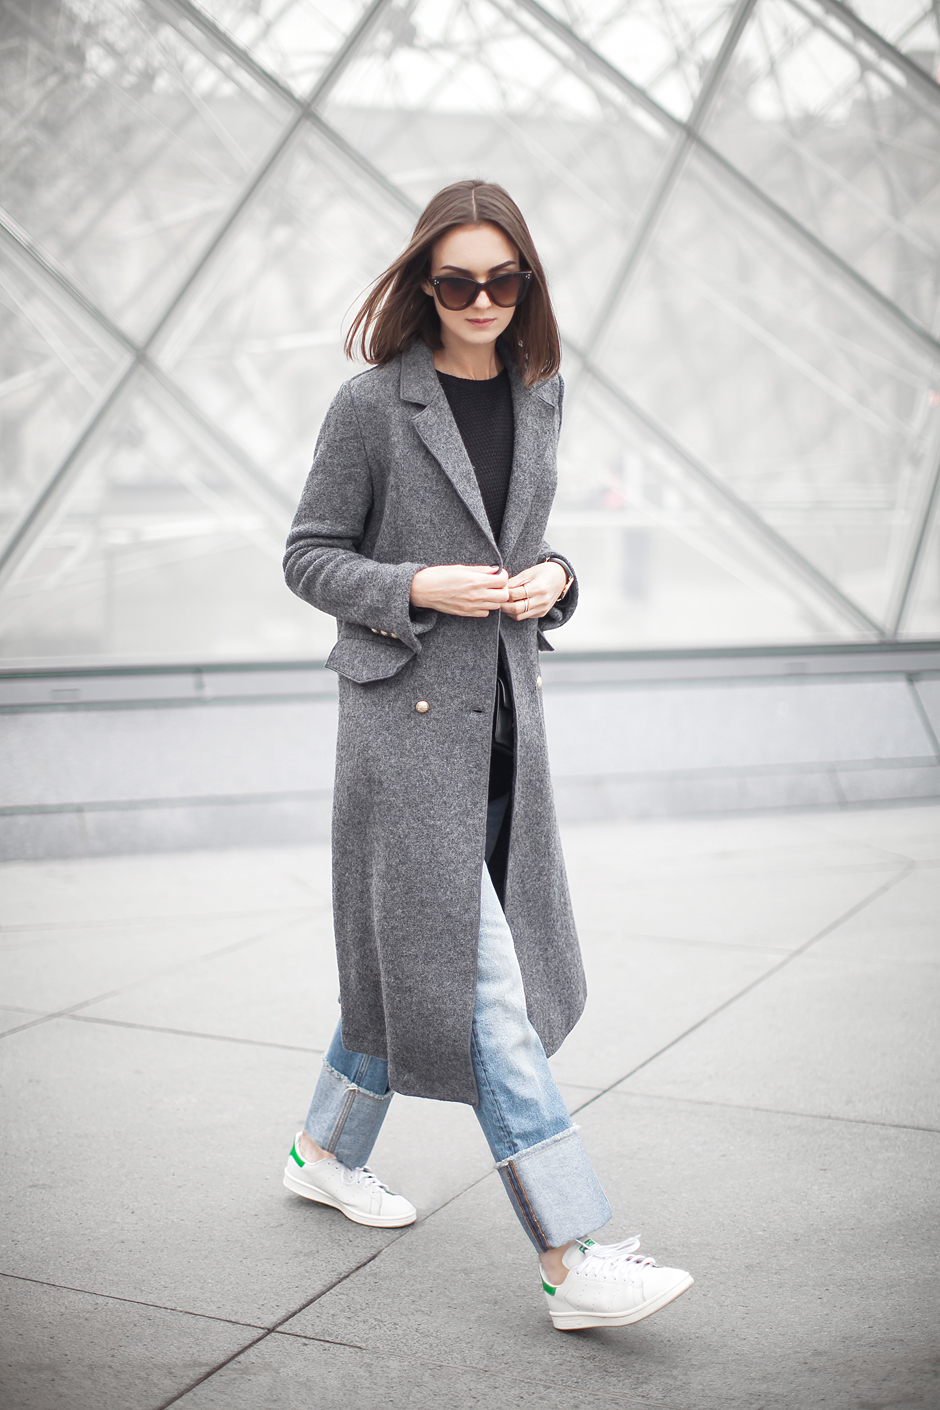 A grey maxi coat such as this will always add a touch of sophistication and glamour to your every day outfit. Nika Huk wears this Zara piece over rolled jeans and a pair of Adidas Stan Smiths. Coat: Zara, Sweater/Jeans: H&M, Shoes: Adidas, Bag: Saint Laurent.